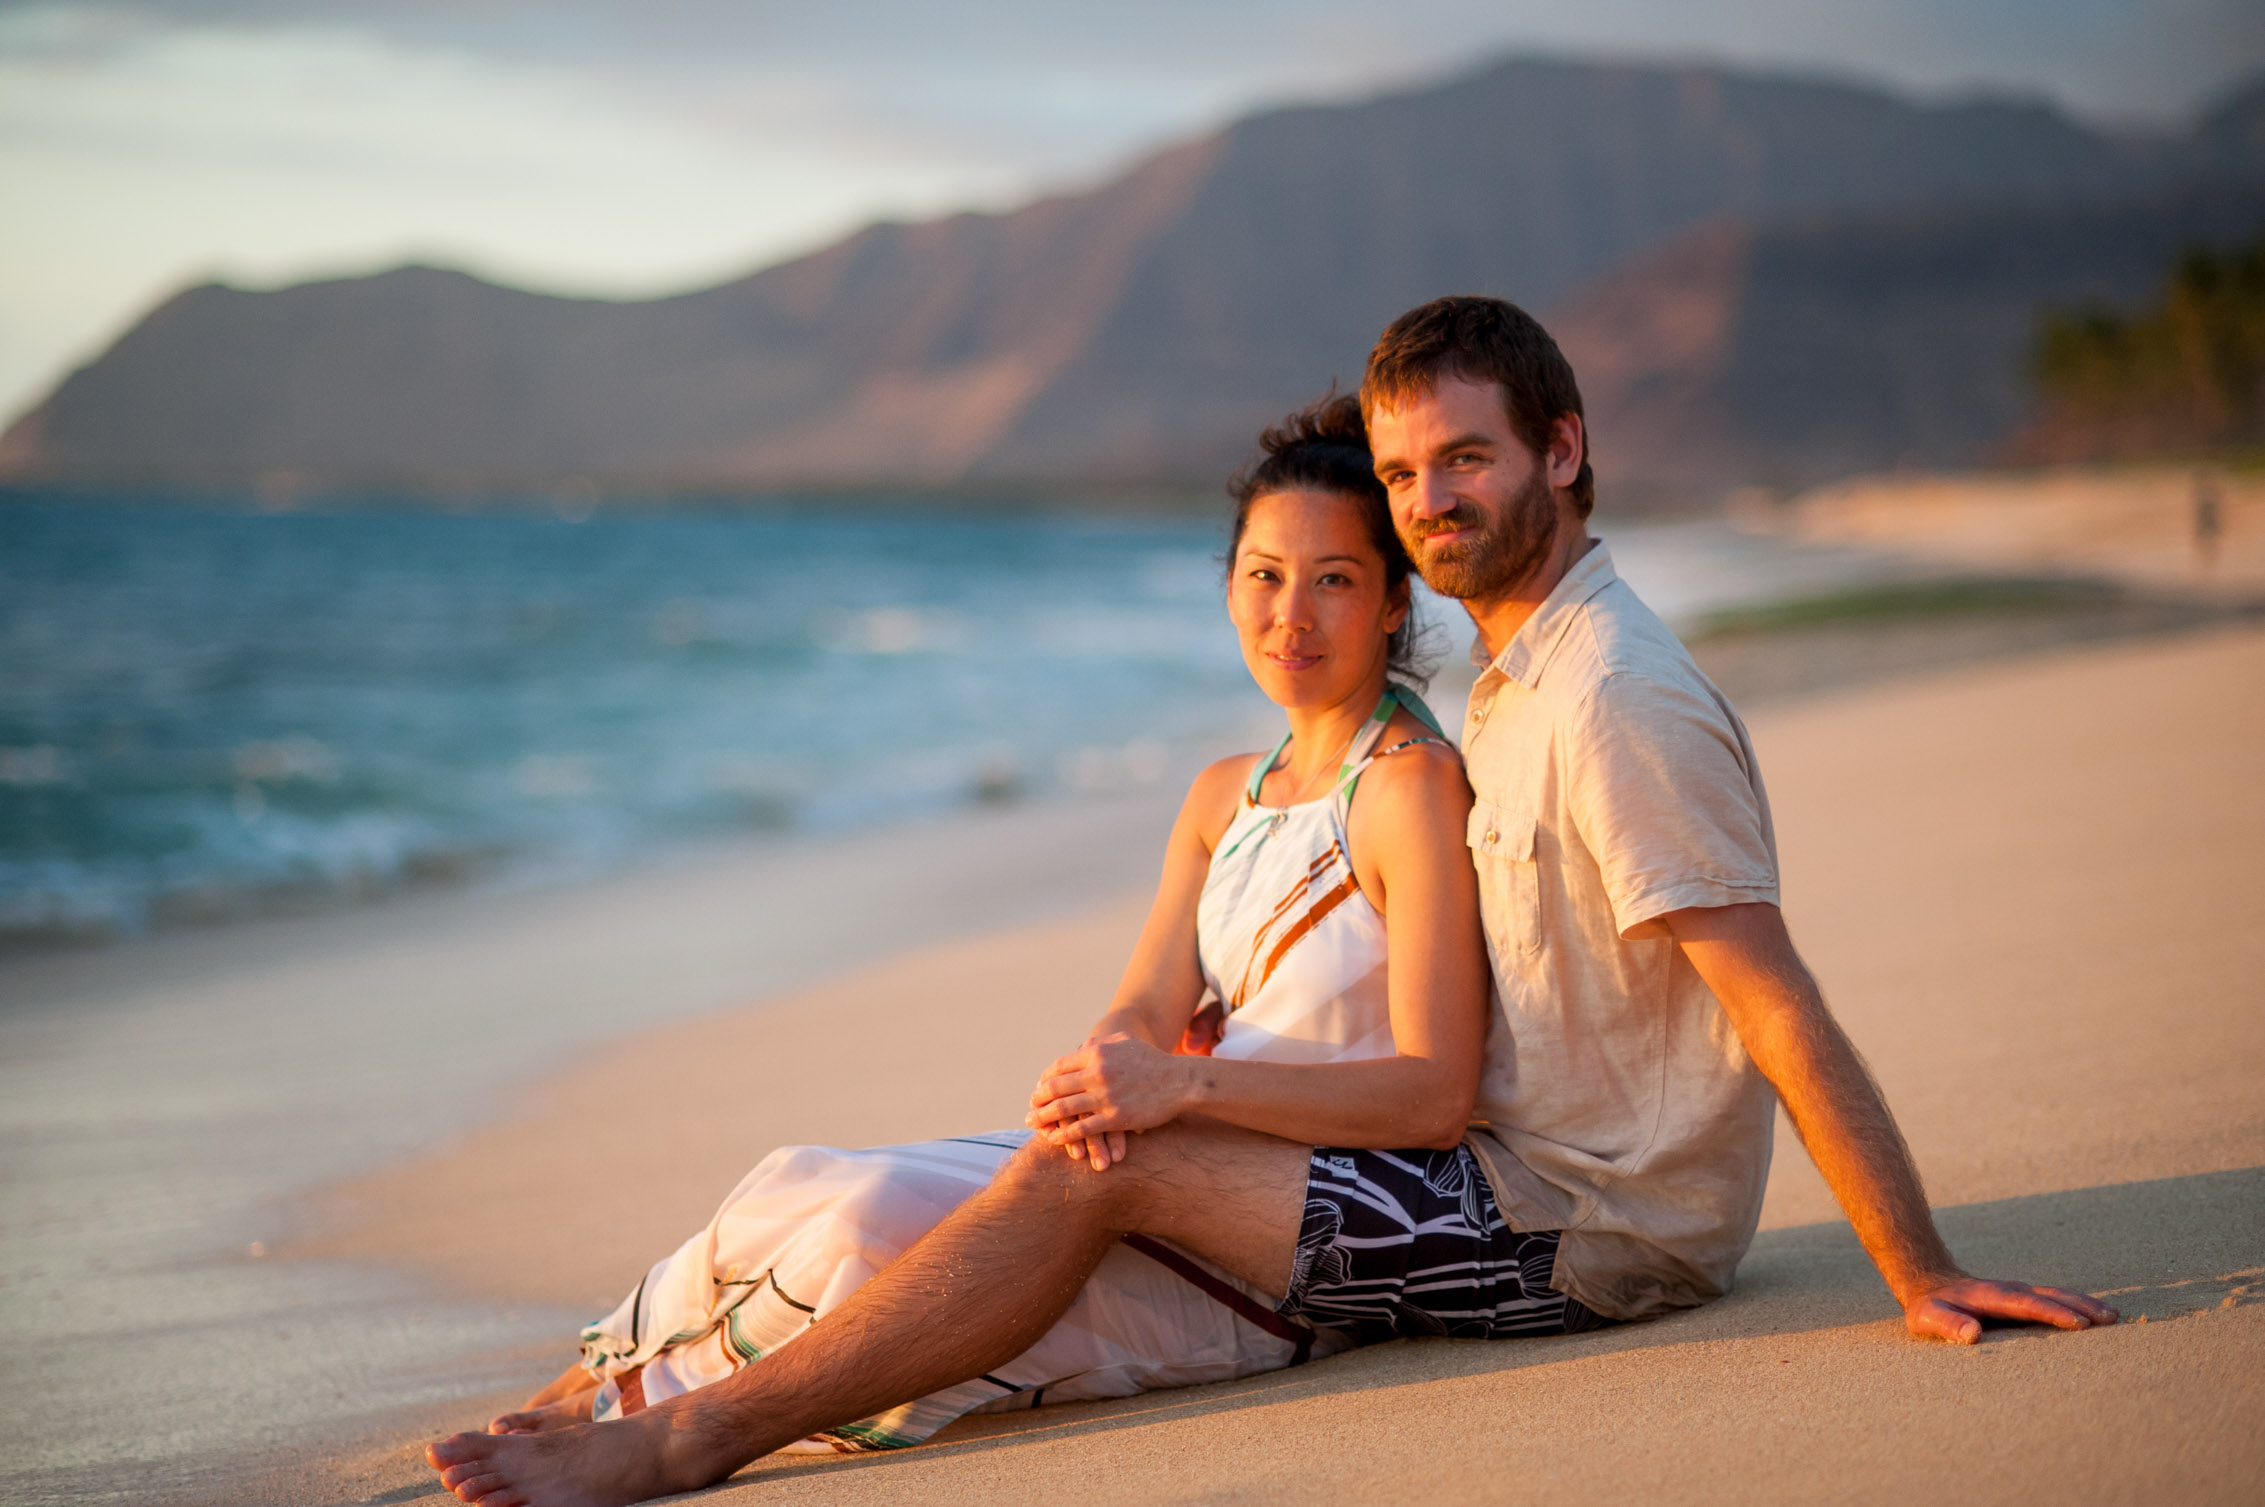 couple embracing on the beach at sunset in hawaii